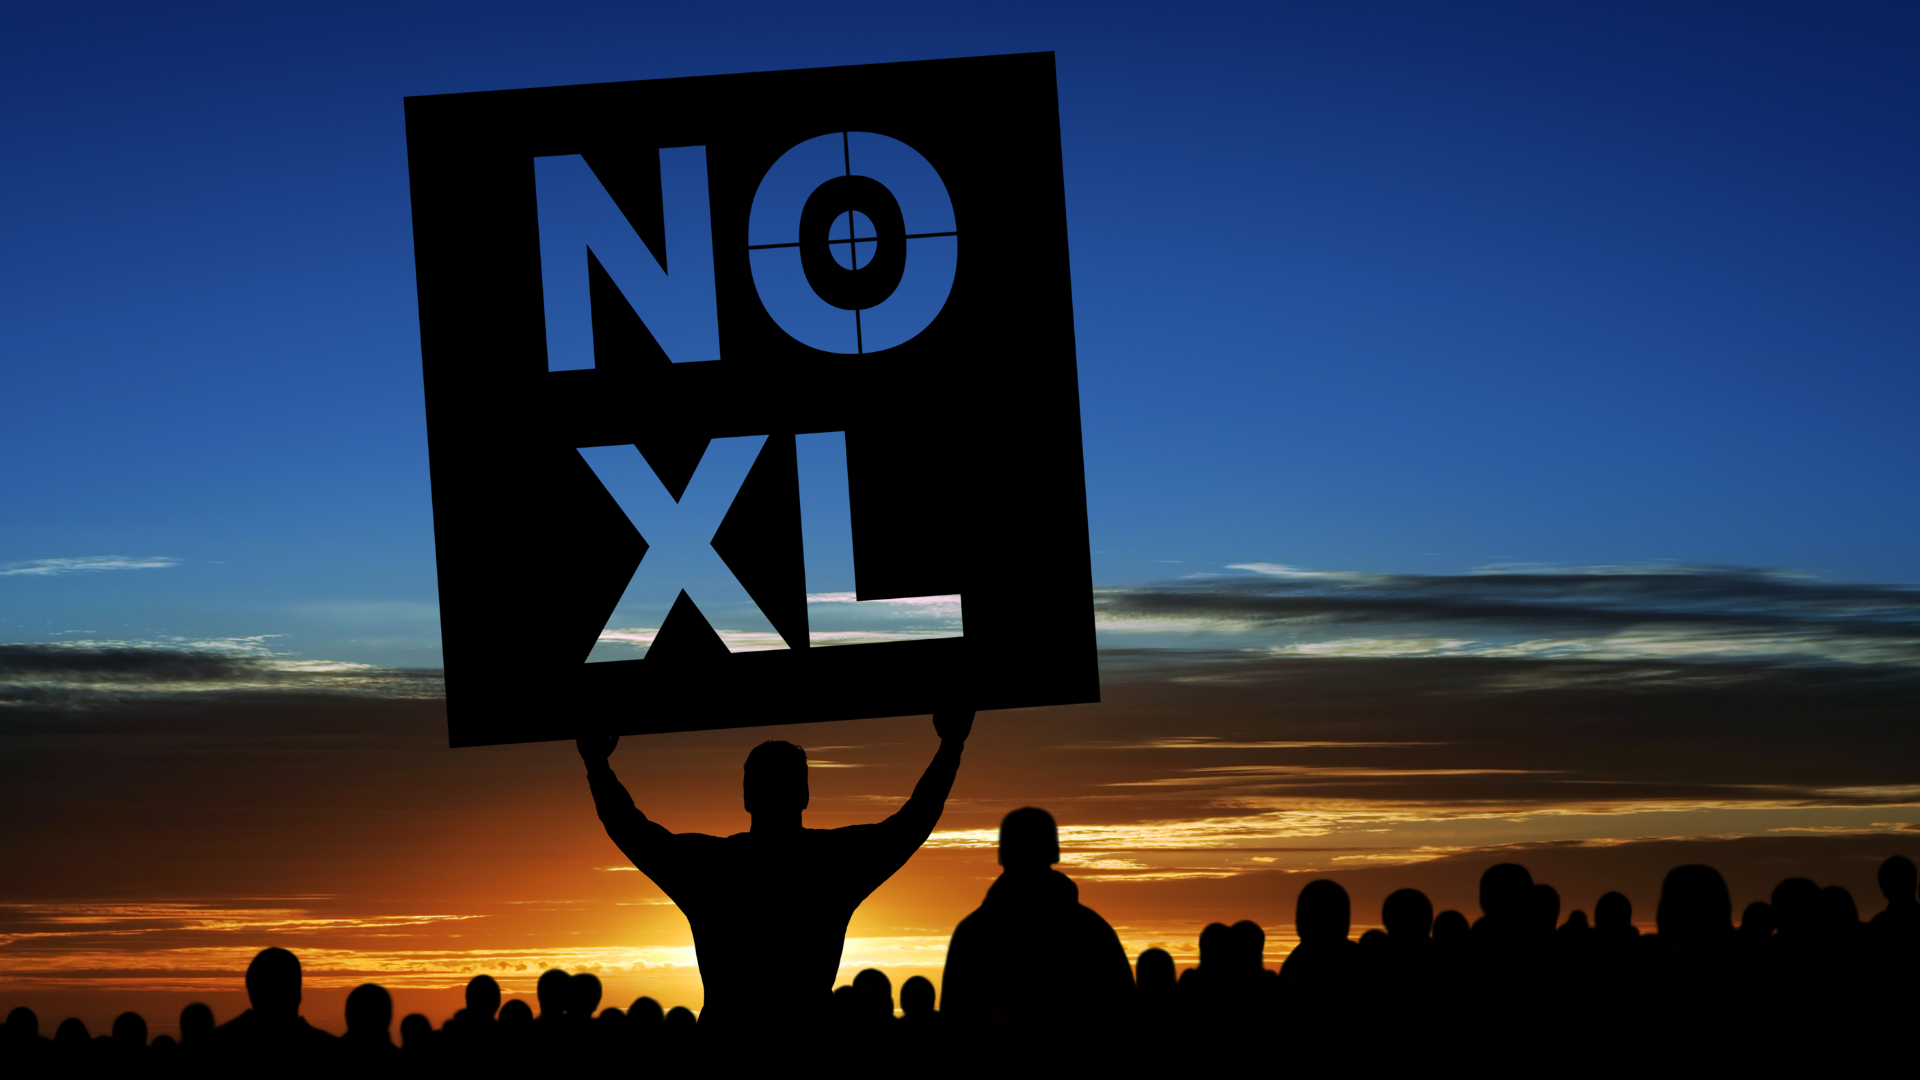 """Protestors at sundown. One protestor holds a sign that says """"No XL"""", referring to the Keystone Pipeline Expansion"""